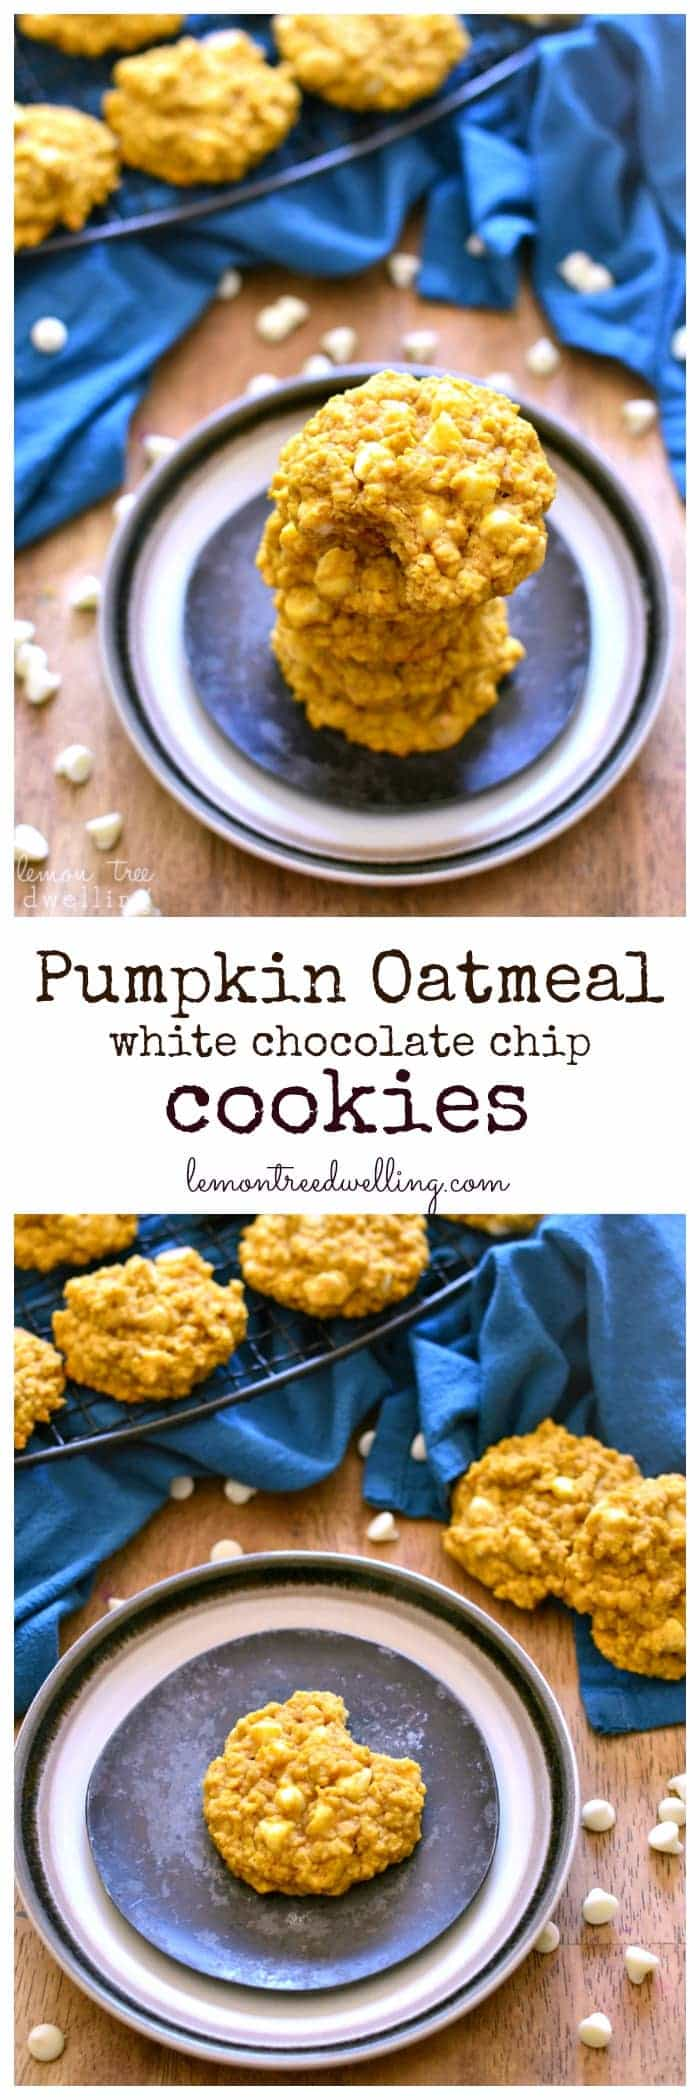 These Pumpkin Oatmeal White Chocolate Chip Cookies are perfectly chewy and packed with pumpkin flavor. They're so good, you can't eat just one!